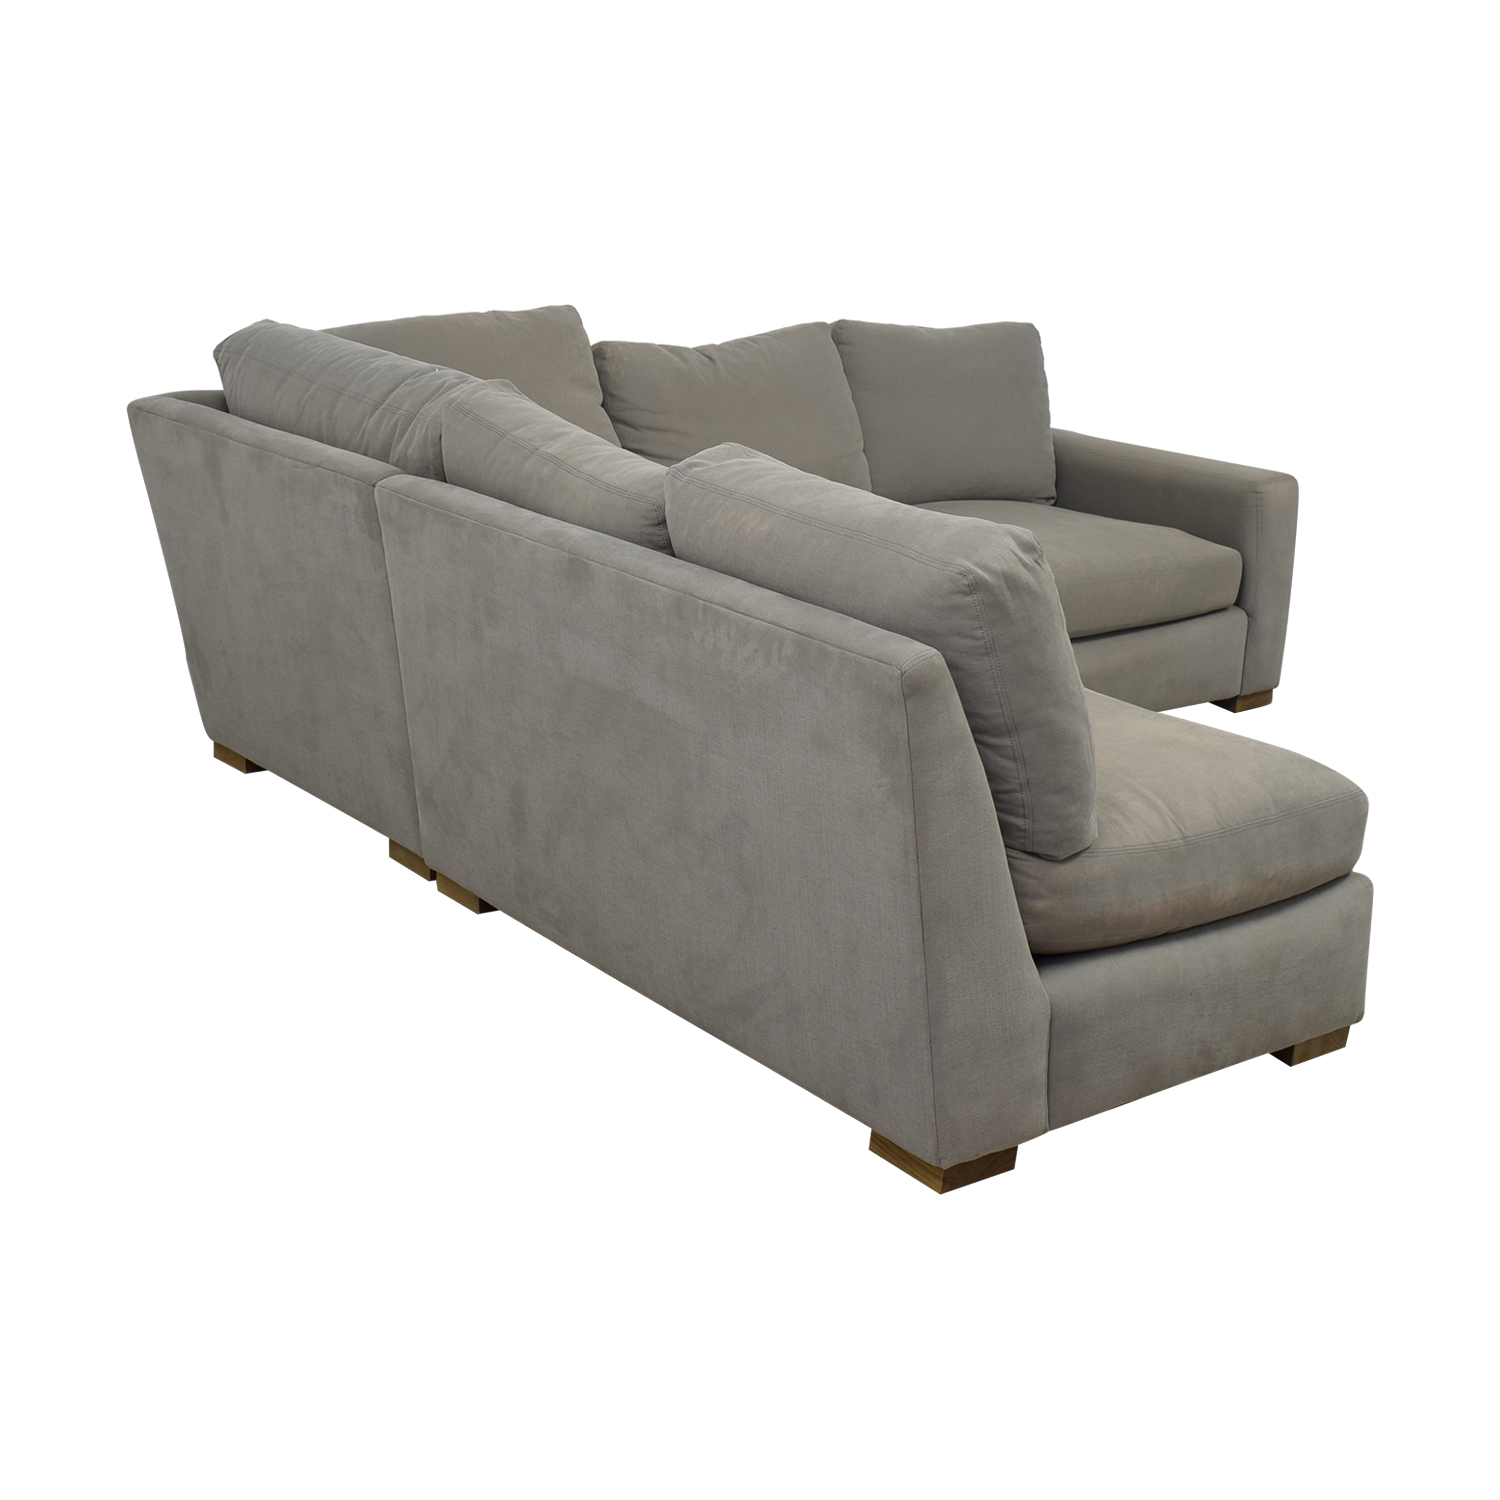 Restoration Hardware Restoration Hardware Grey L-Shaped Sectional grey